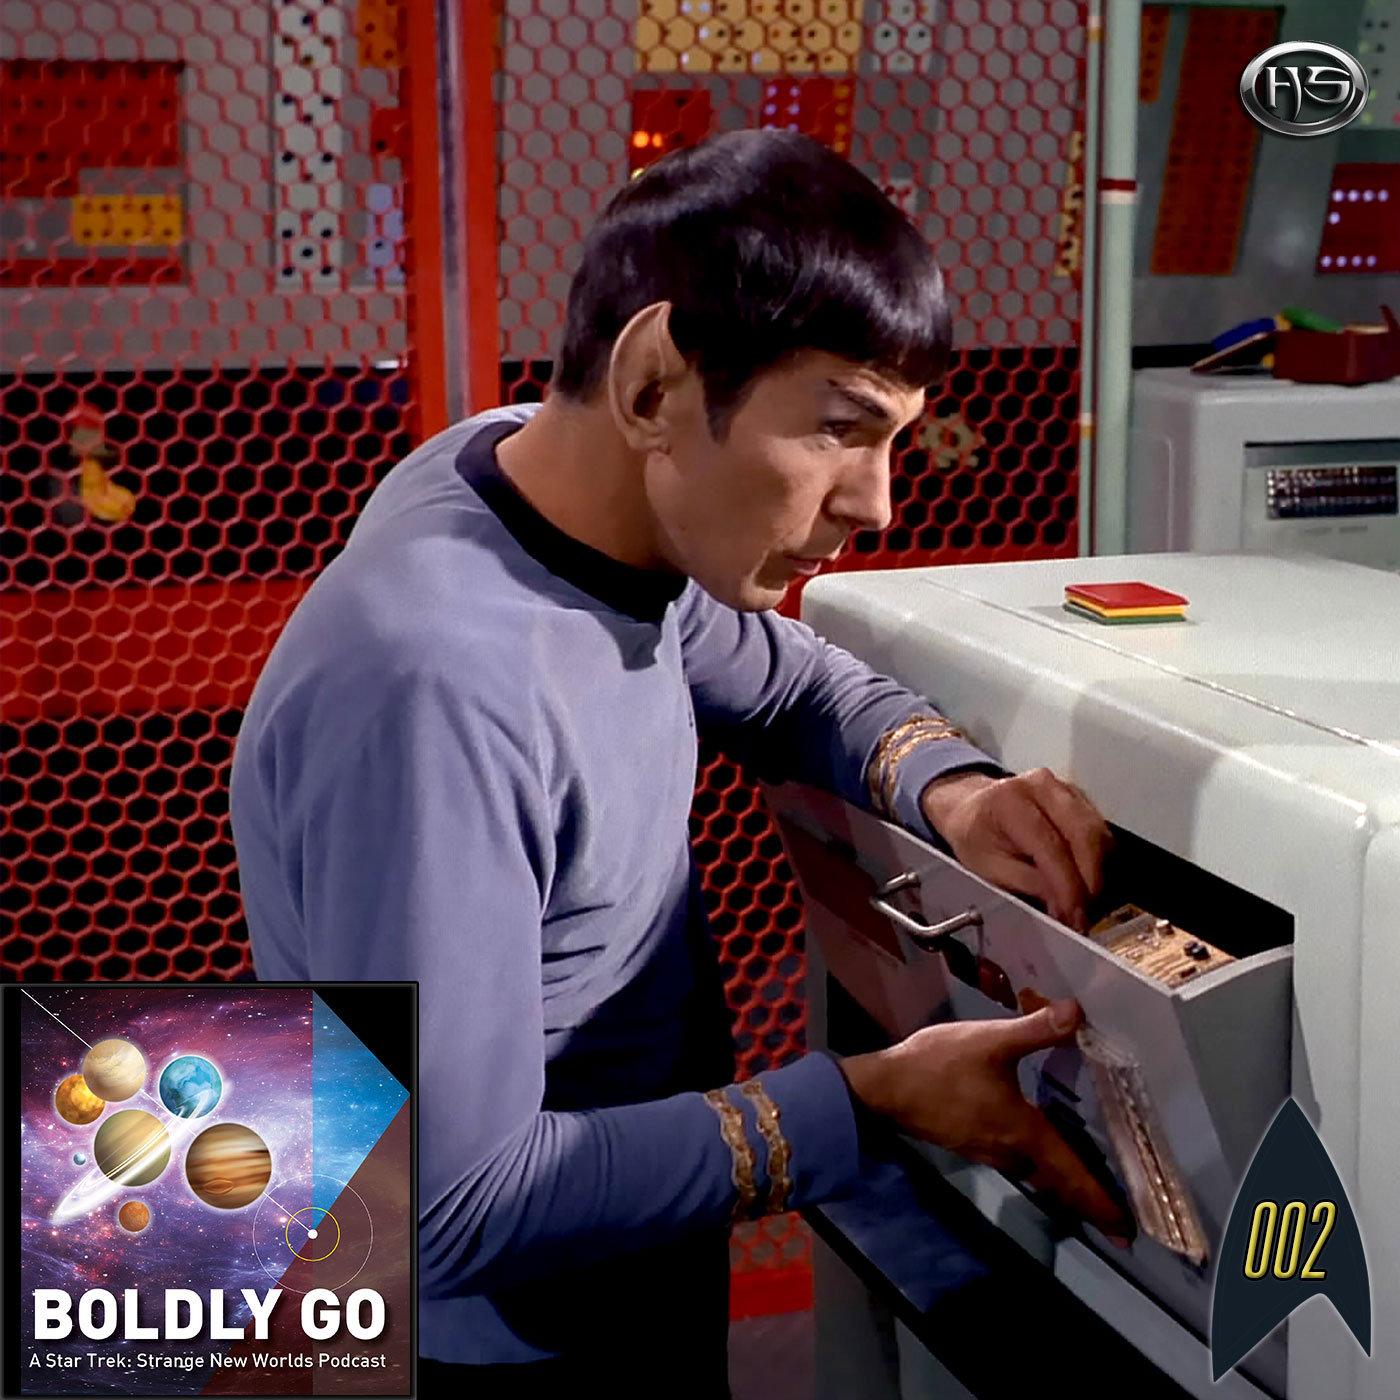 Boldly Go Episode 2